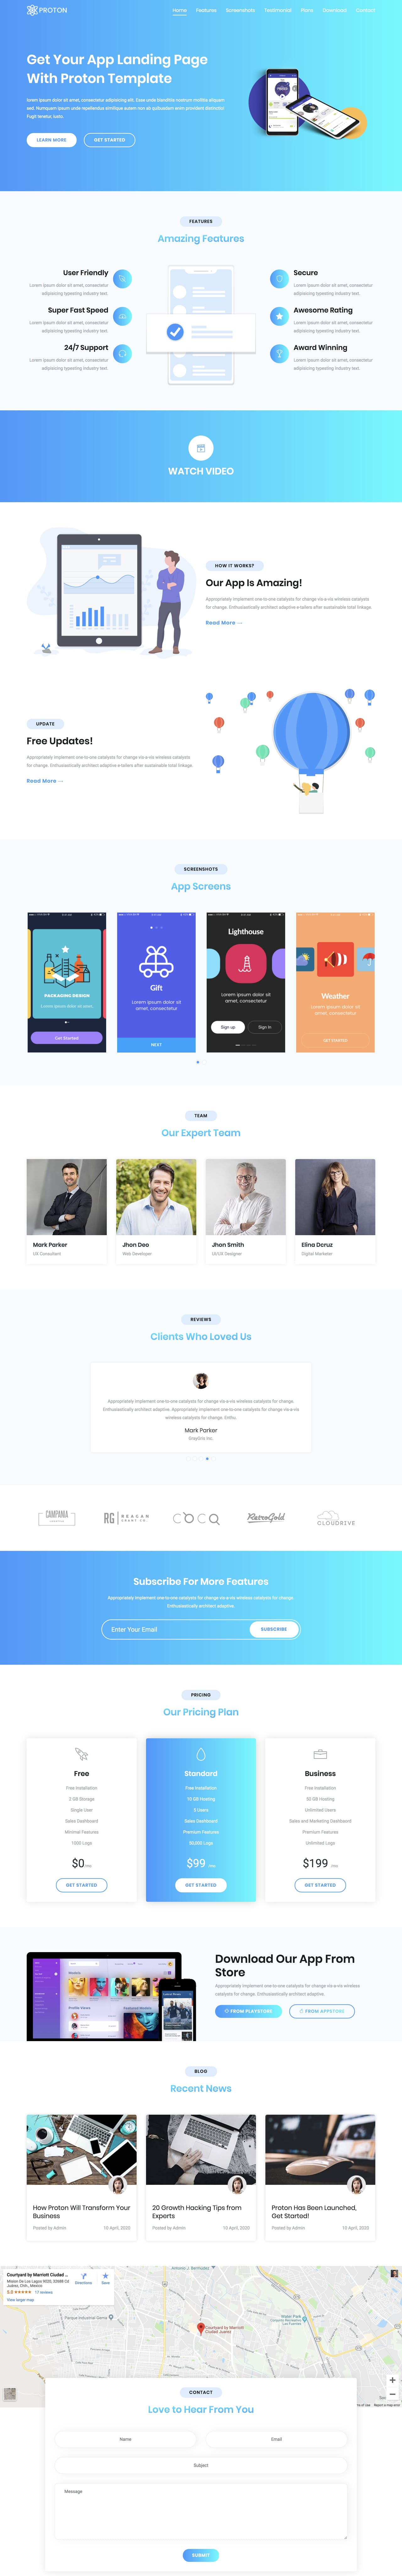 One Page HTML Landing Page for an App | DesignHooks